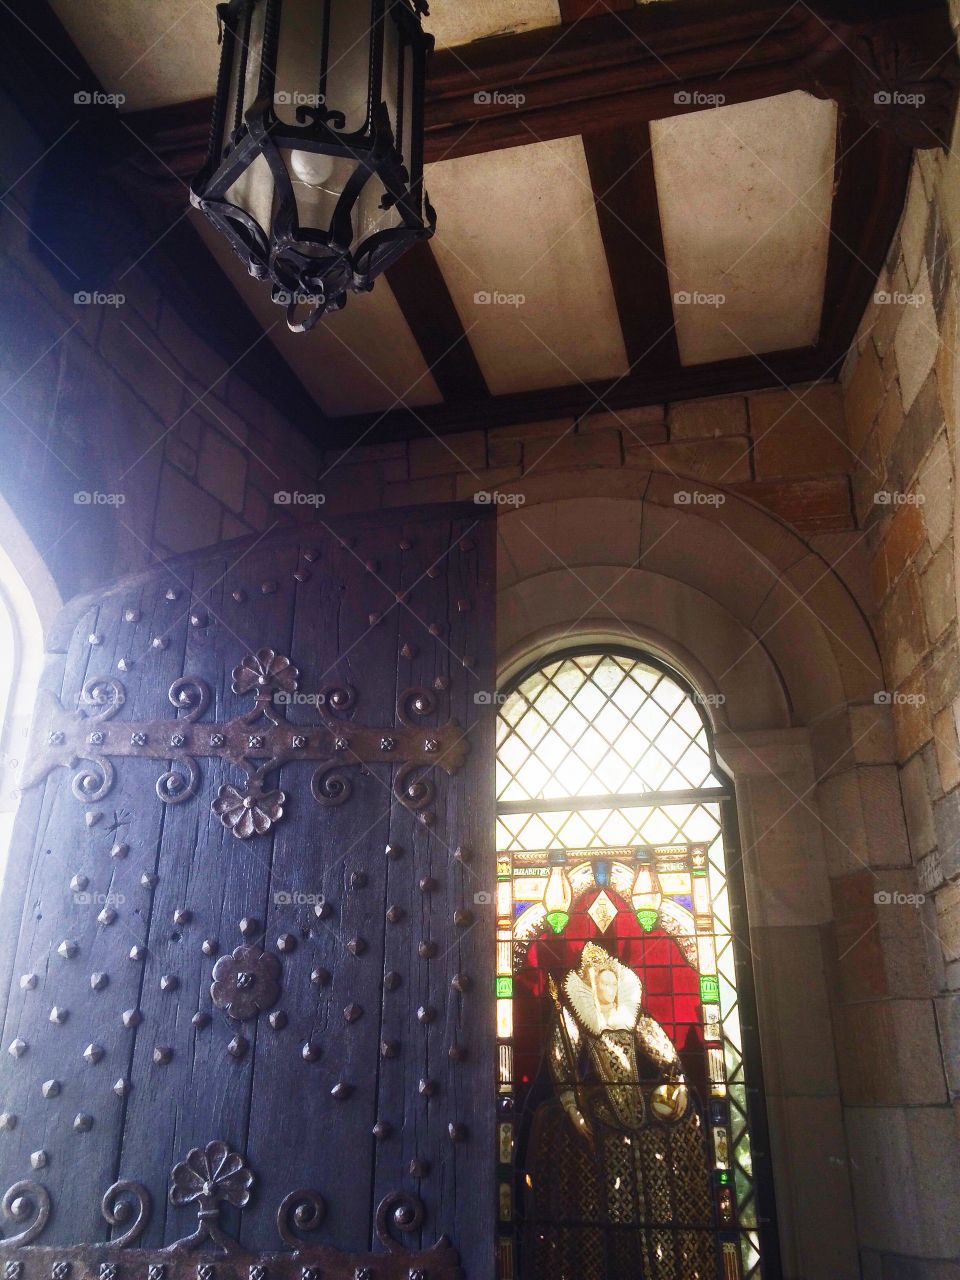 Castle Entry. Stained glass and an ornate door